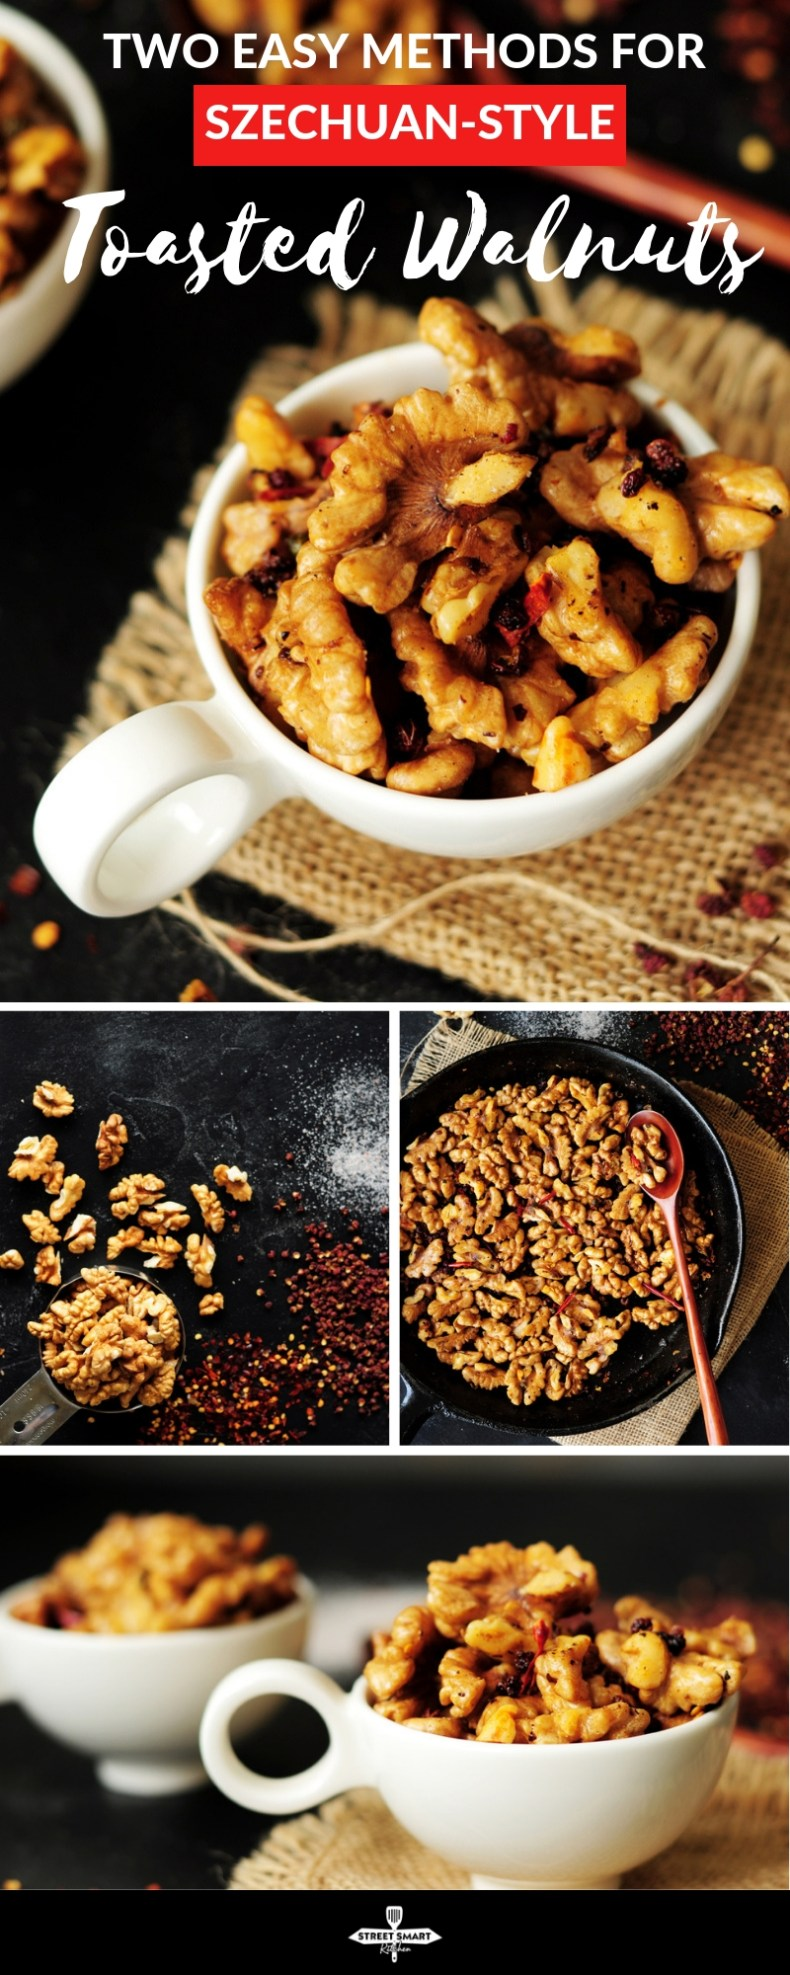 Two easy methods to show you how to toast walnuts, or any nuts, plus a recipe for a spicy and delicious Szechuan-style toasted walnuts.